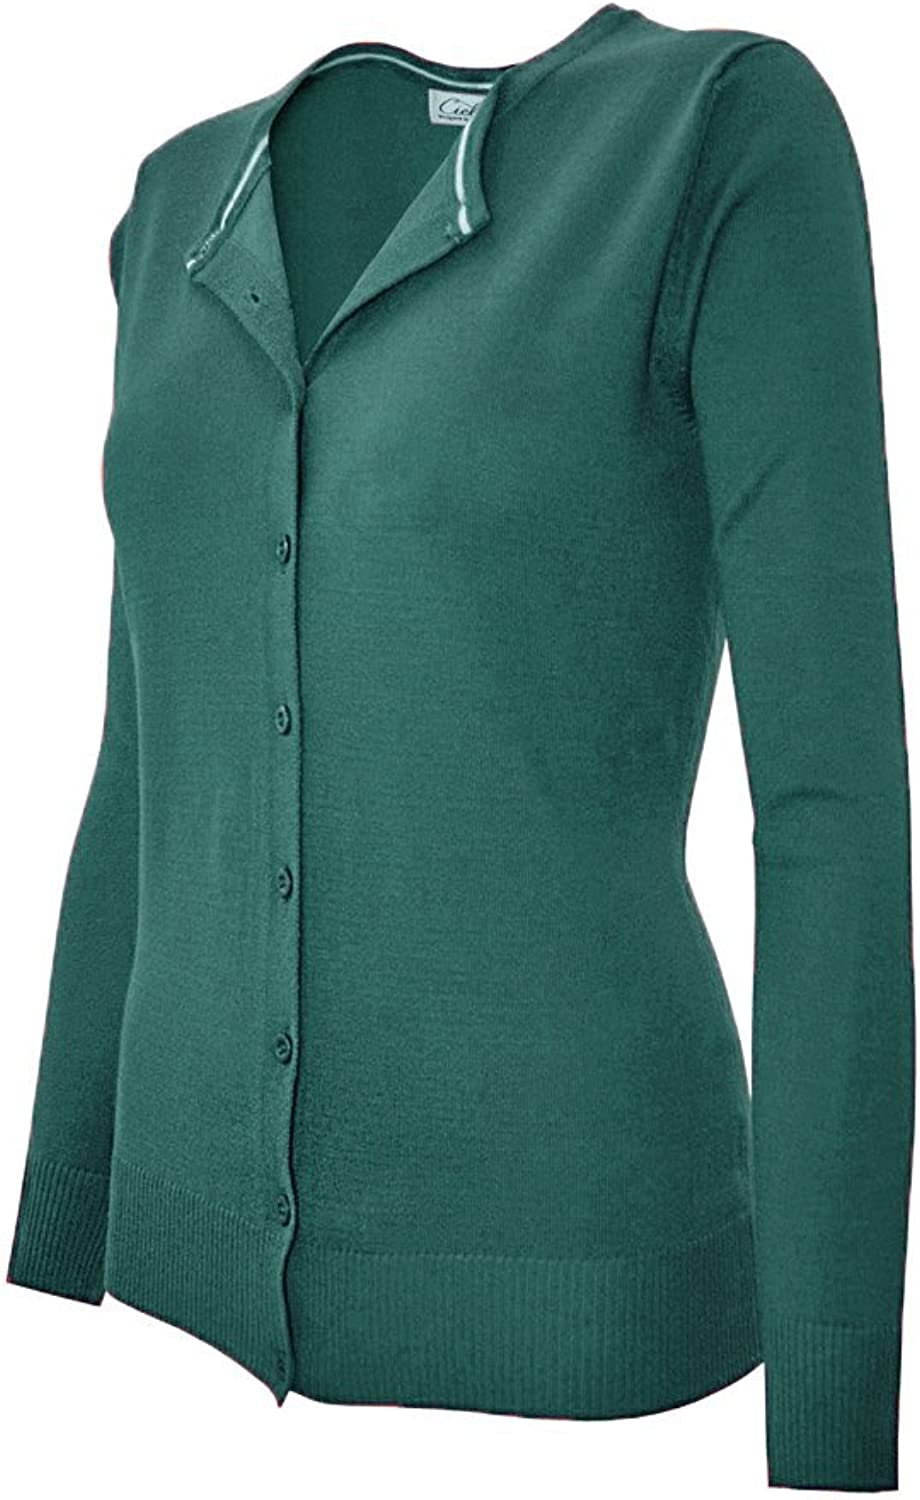 CIELO Women's Solid Basic Stretch Button Down Sweater Cardigan